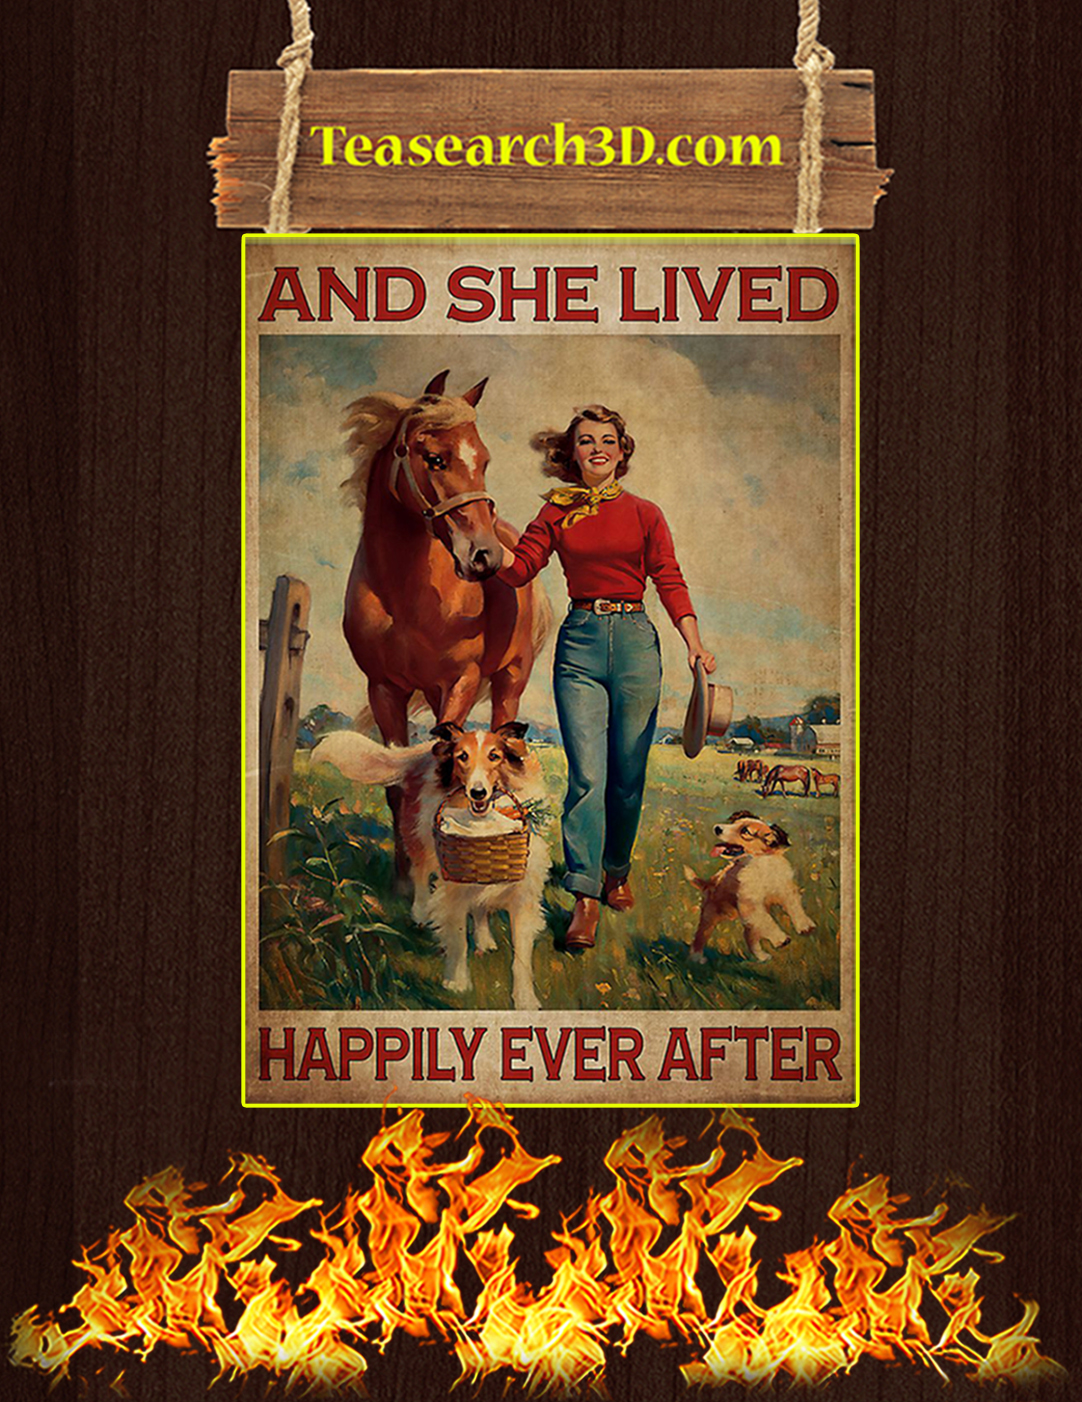 Girl with horse and dogs lived happily ever after poster A2